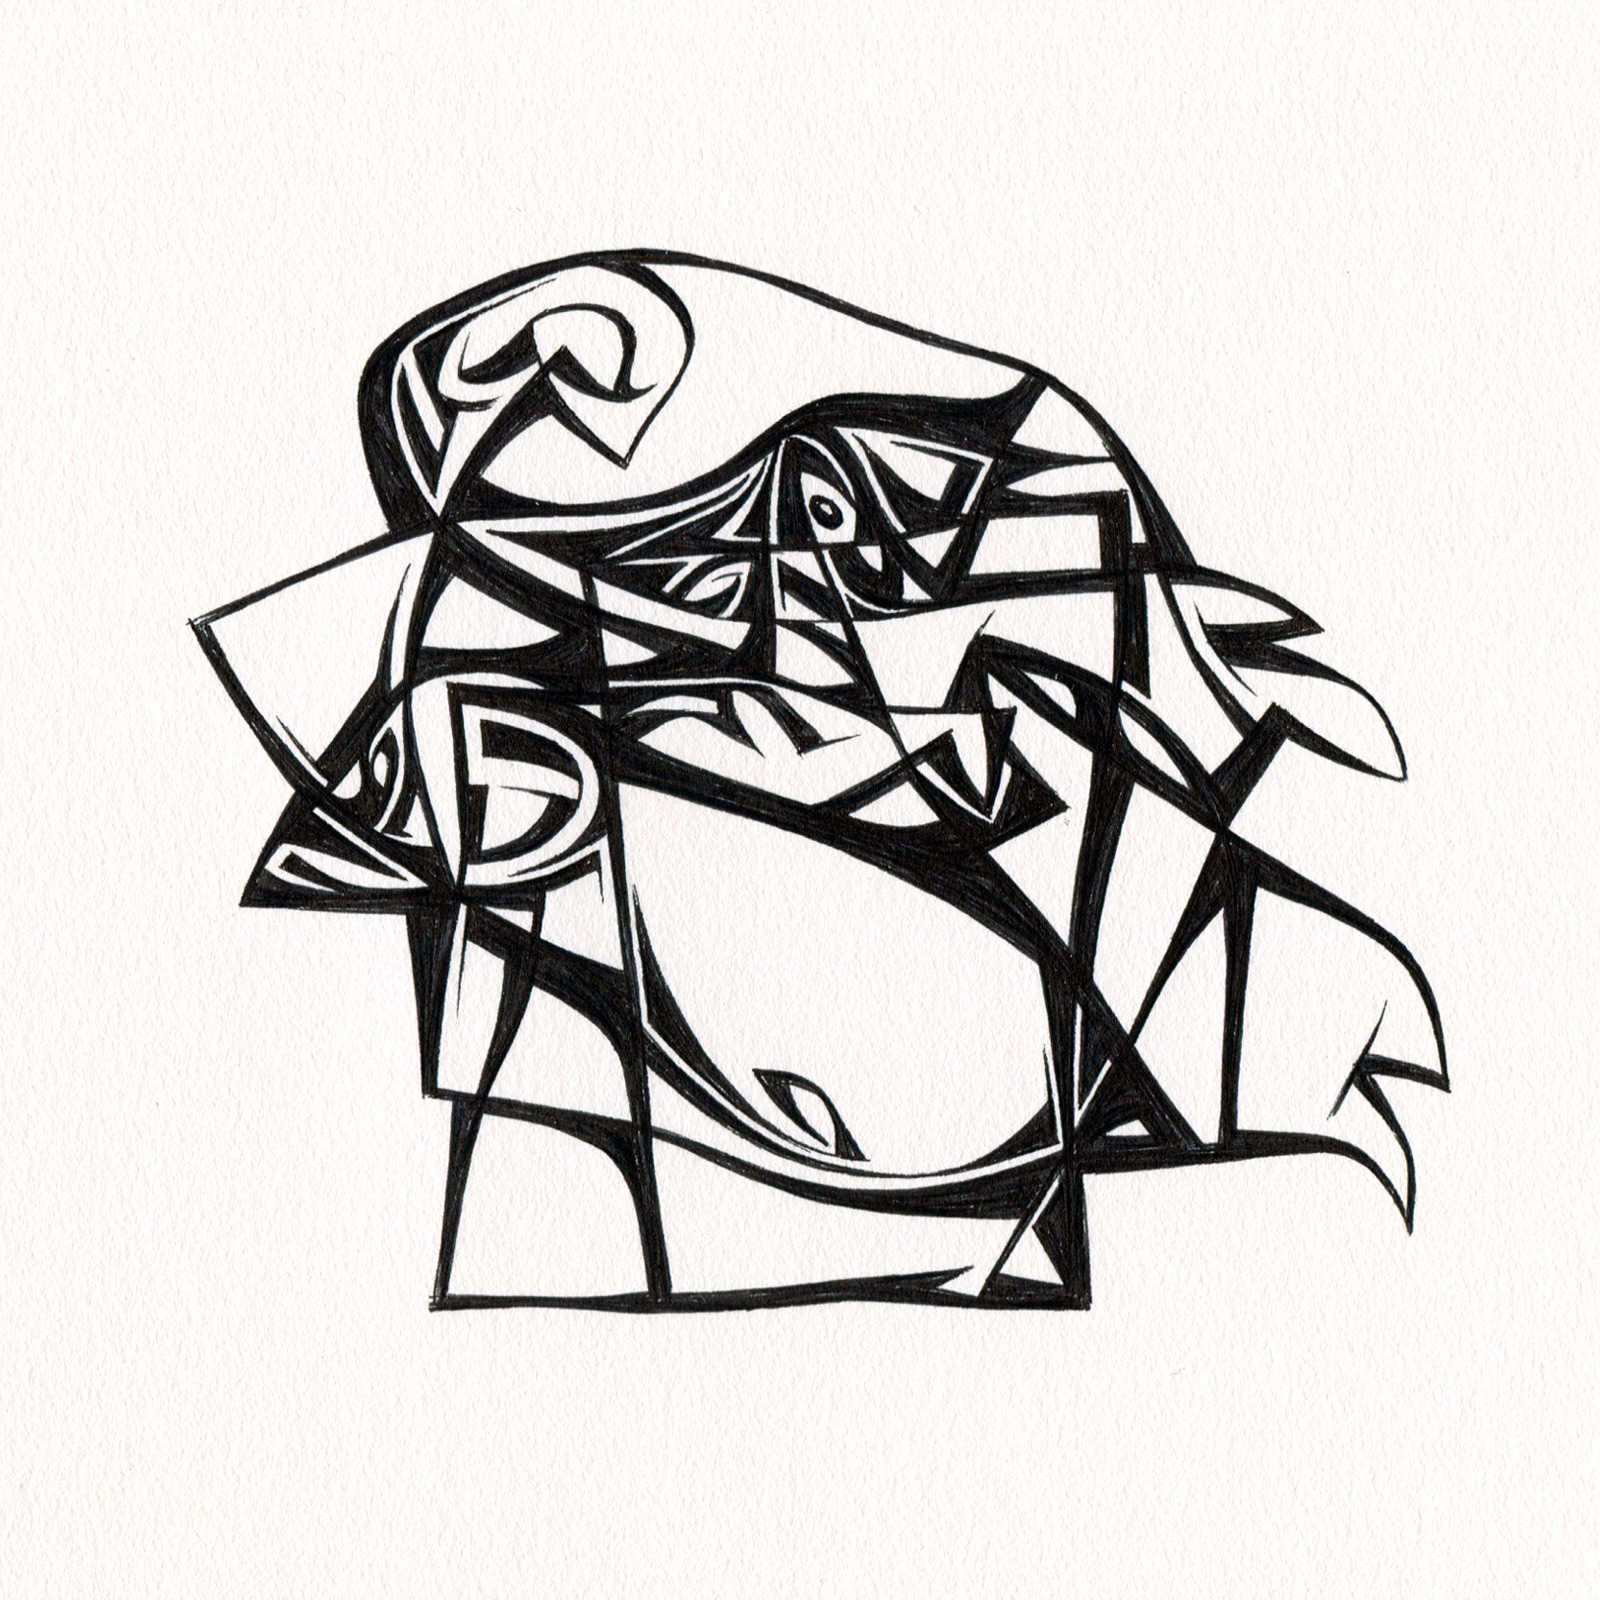 "Untitled Ink Drawing #95 , 2015. Ink on paper. Approximately 5"" x 5""."